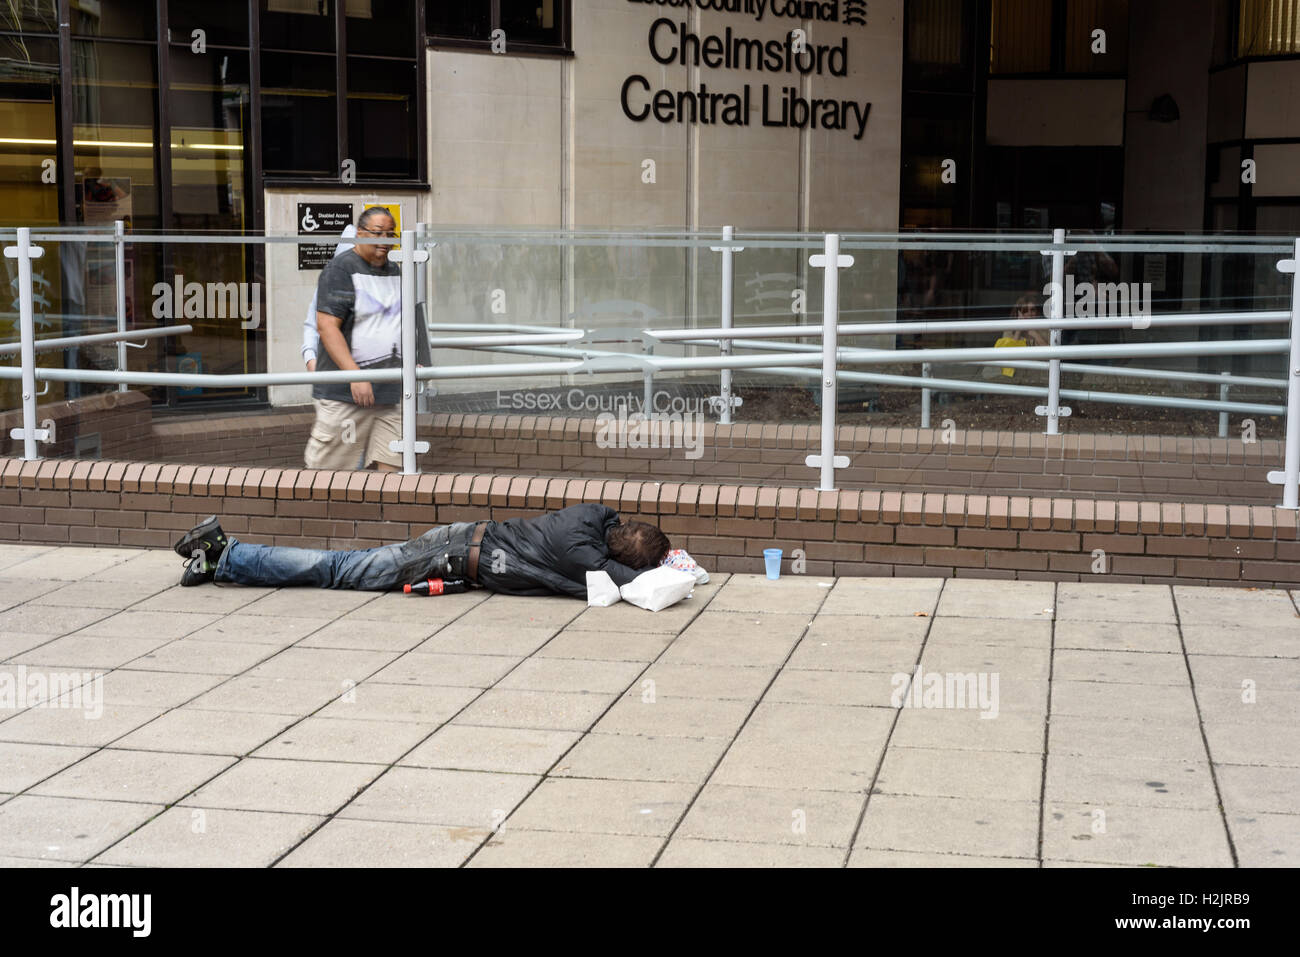 Sleeping homeless man sleeps outside Chelmsford County Council Library in the summer of 2016 in Essex England - Stock Image